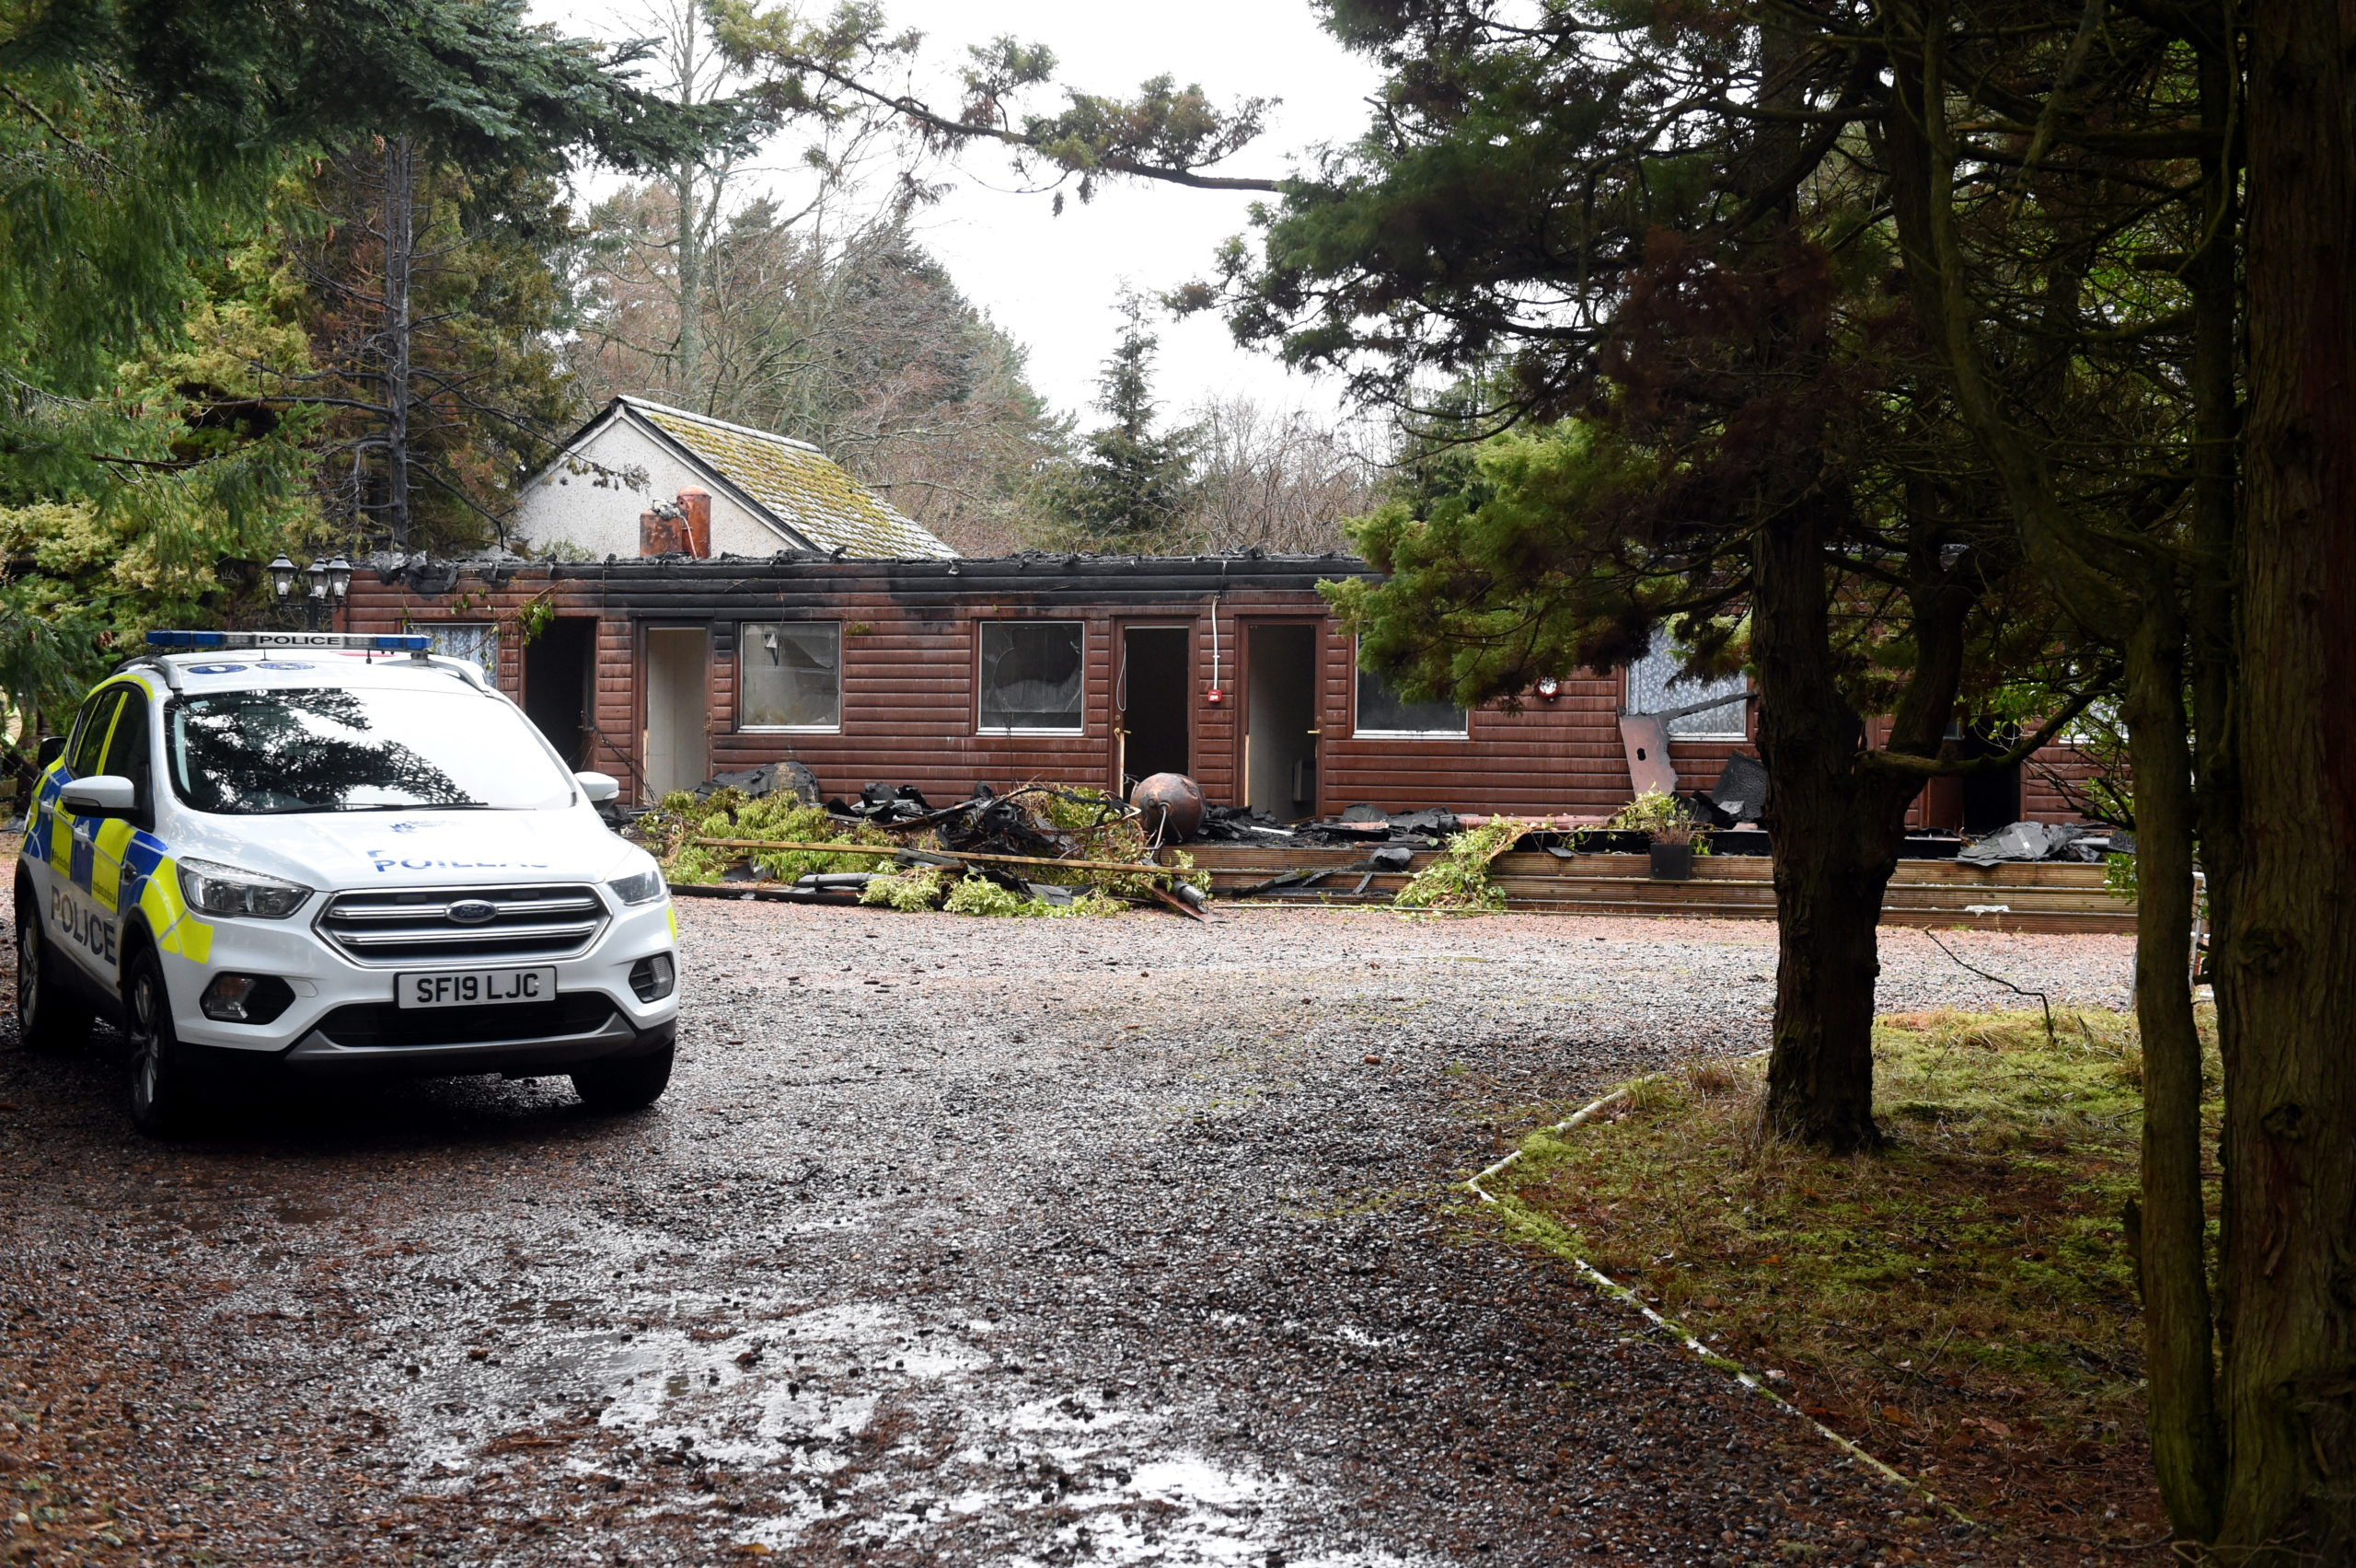 The scene of the fire at the Glen Lui hotel in Ballater